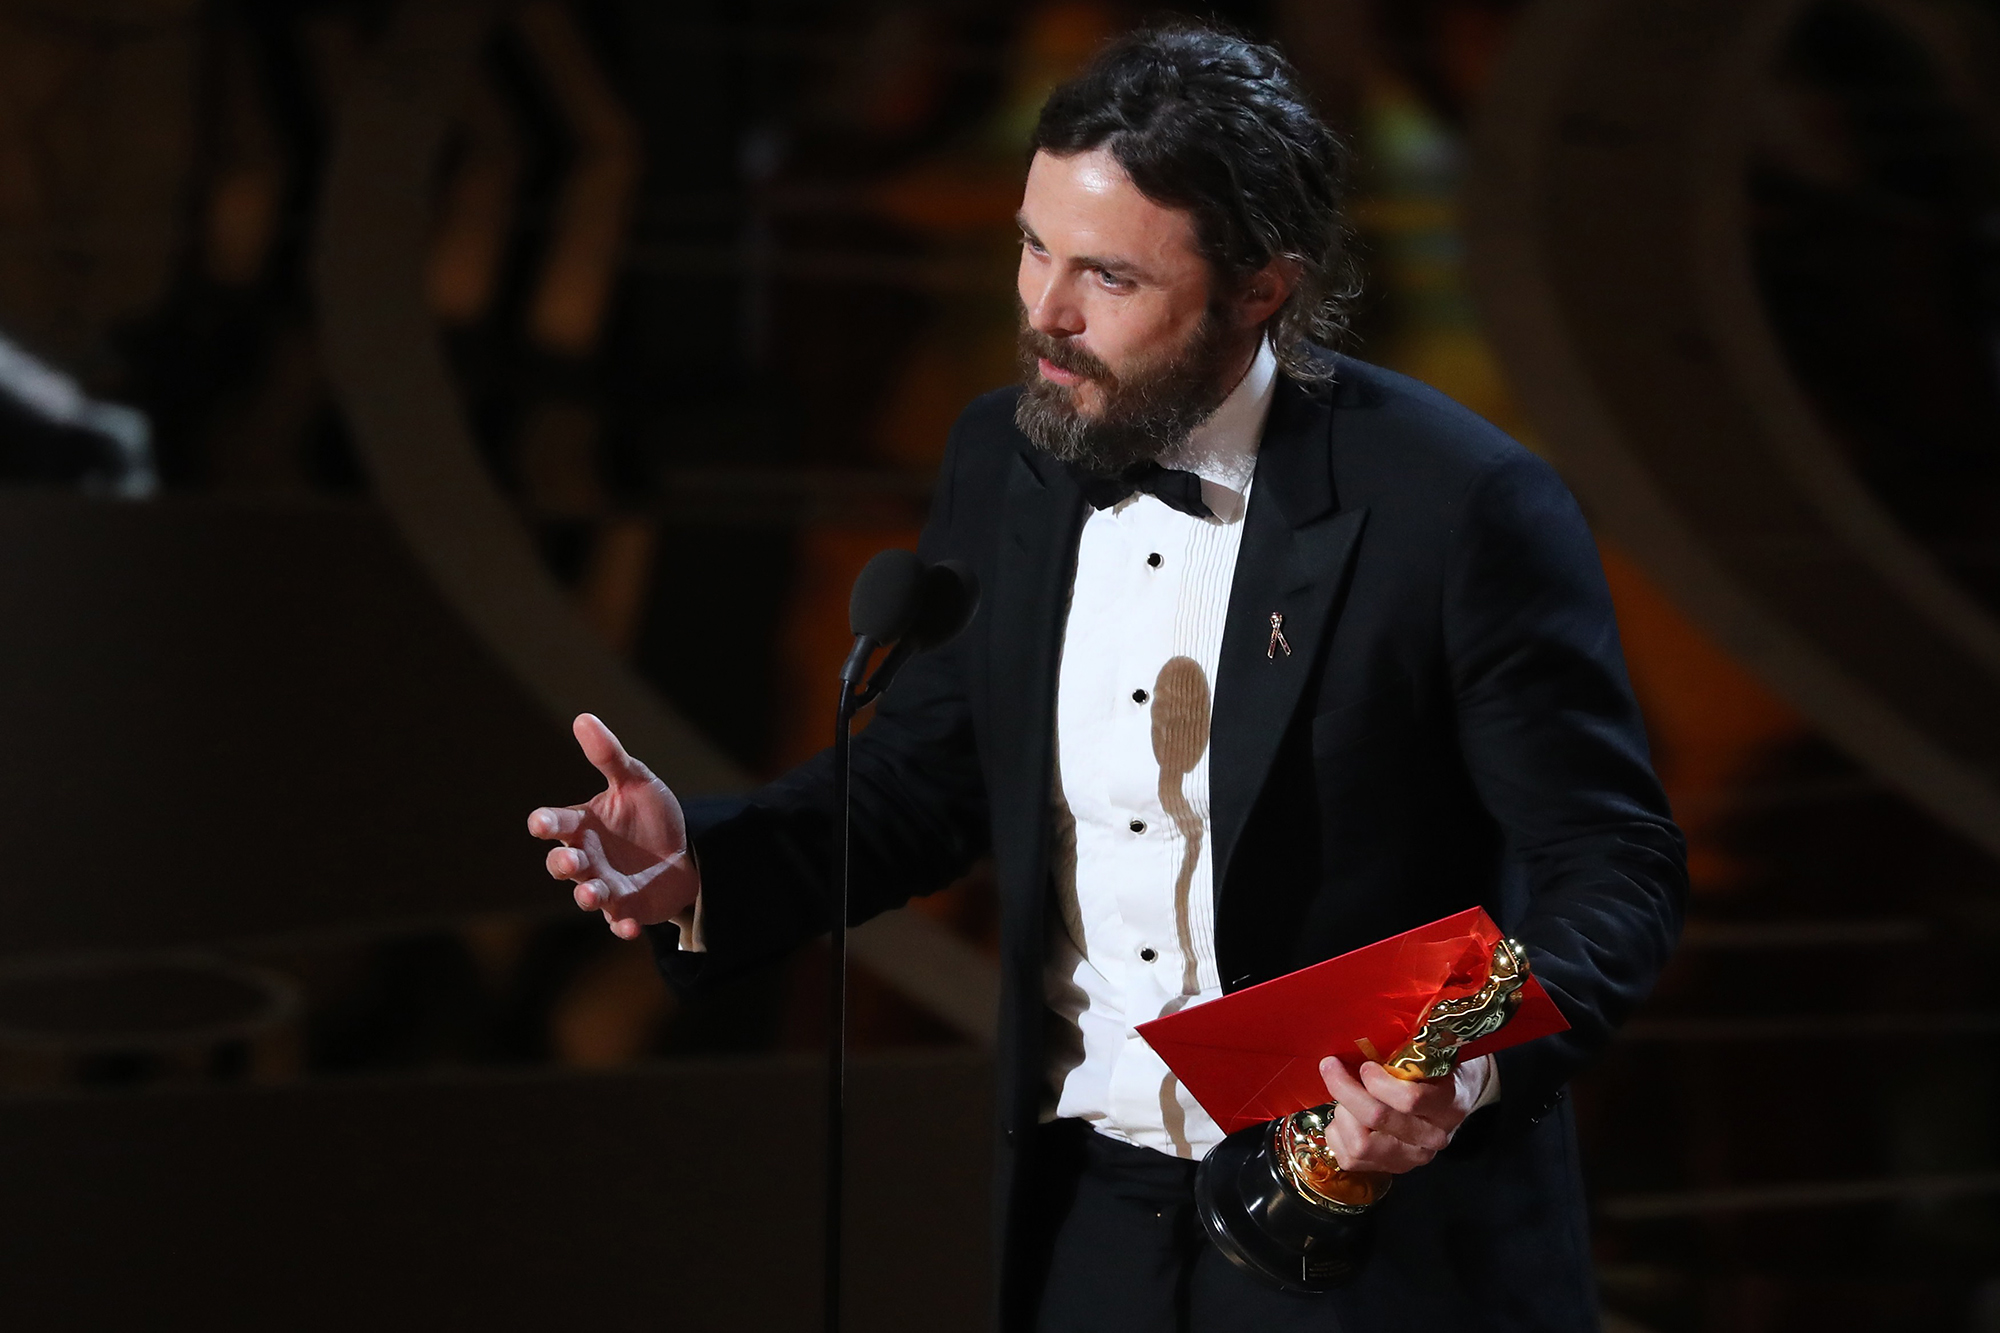 Casey Affleck speaks as he accepts the Oscar for Best Actor for Manchester by the Sea, on Feb. 27, 2017 in Hollywood, Calif.